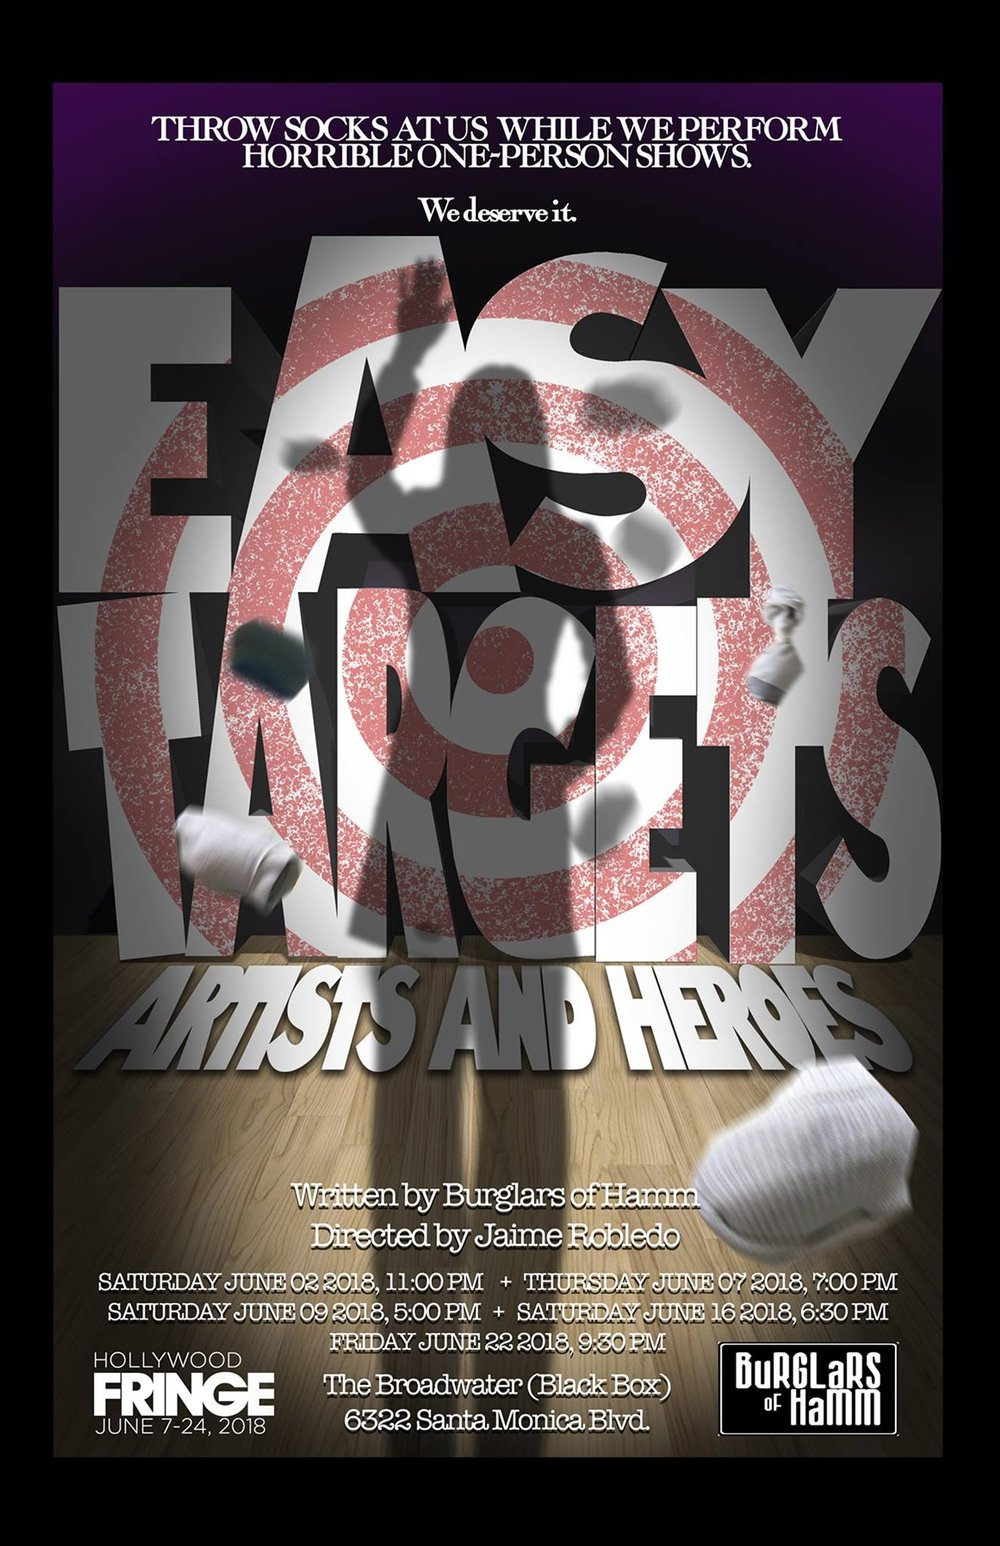 "The winner of the 2017 Hollywood Fringe Best Comedy Award returns with four new pieces, including a world premier piece starring Hugo Armstrong. EASY TARGETS is for every audience member who has sat in the dark at a bad play thinking they now know what prison must be like. It allows the audience to act out the fantasy of punishing their jailers. A satire of one-person-shows, EASY TARGETS presents 4 short solo shows and then invites the audience to show their ""appreciation"" by pummeling the performers with rolled-up socks any time they feel bored, annoyed, patronized, manipulated, etc. Each audience of EASY TARGETS forms a pack working to remind the performers, writers and designers that if they fail to respect the audience, they will suffer the sock!   Better Lemons  - ""One of the most fun evenings you will ever have at the theater... such a hoot""   This Stage LA  - ""So funny and so smart... gorgeous... relentlessly entertaining and beautifully performed.""   Stage Raw  - ""About the most fun one can have in the theatre.... exquisitely calibrated... a genuinely hilarious production, and a Fringe must-see."" (Top Ten)   Gia On The Move  - ""The most fun you will have at Fringe... So creatively absurd is the comedy and so galvanizing is the writing, directing and performances... you may be in jeopardy of spending an entire pay day check on socks! Brilliant!""   See It Or Skip It  - ""Oh my Goodness, I had so much fun... I cried because I was laughing so hard... If you can get a ticket to this, you won't be disappointed... a must-see.... just go, get there!""   fringereview.com  - ""Brilliant comedic minds... razor-sharp... tight and astute performances... by golly, you just want to knock Clark Gable's hat off his dumb head""   ScopingLA  - ""Want to get that pent up aggression out of your system...? ' Easy Targets' at Sacred Fools is here for you...  incredibly entertaining... these talented actors are eager to see what your pitching arm can deliver. Come at 'em!""   Haunting  - ""Masterful blend of a one-person show, props, and audience participation... one of the best shows I've seen at Fringe to date""   The TVolution  - ""Absurd perfection... so dead-on funny... As far as 14 karat zaniness goes, this show was a Fort Knox""   The Scotsman (Scotland's National Newspaper)  – ""The woman next to me laughed so hard, she had to use an inhaler.""   Three Weeks (Scotland)  – ""Jaw droppingly good comedy""   The Stage (Scotland)  – ""This is just great fun""   The Daily Bruin  – ""Seeing a play has never been so much fun""   Tix and Info"